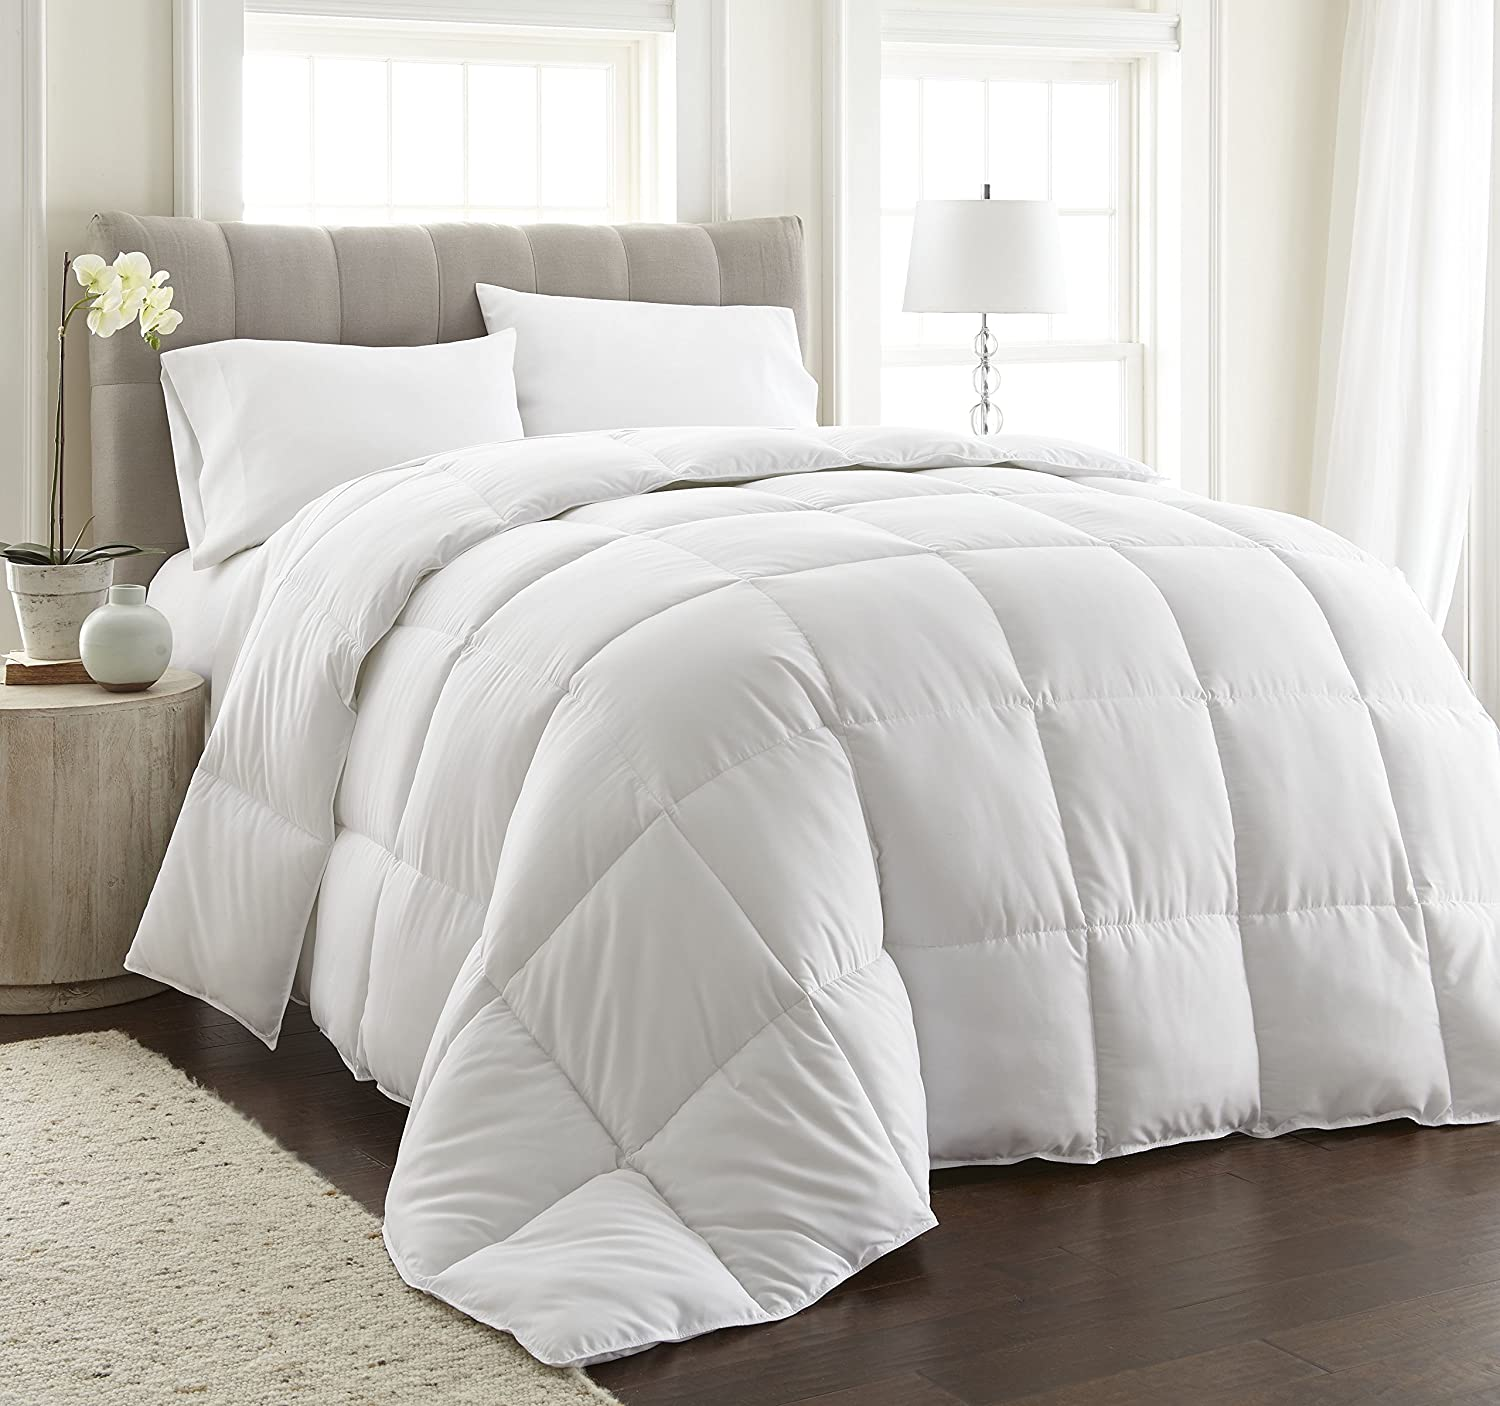 sleep set comforter wayfair piece sheet number series sheets keyword basics